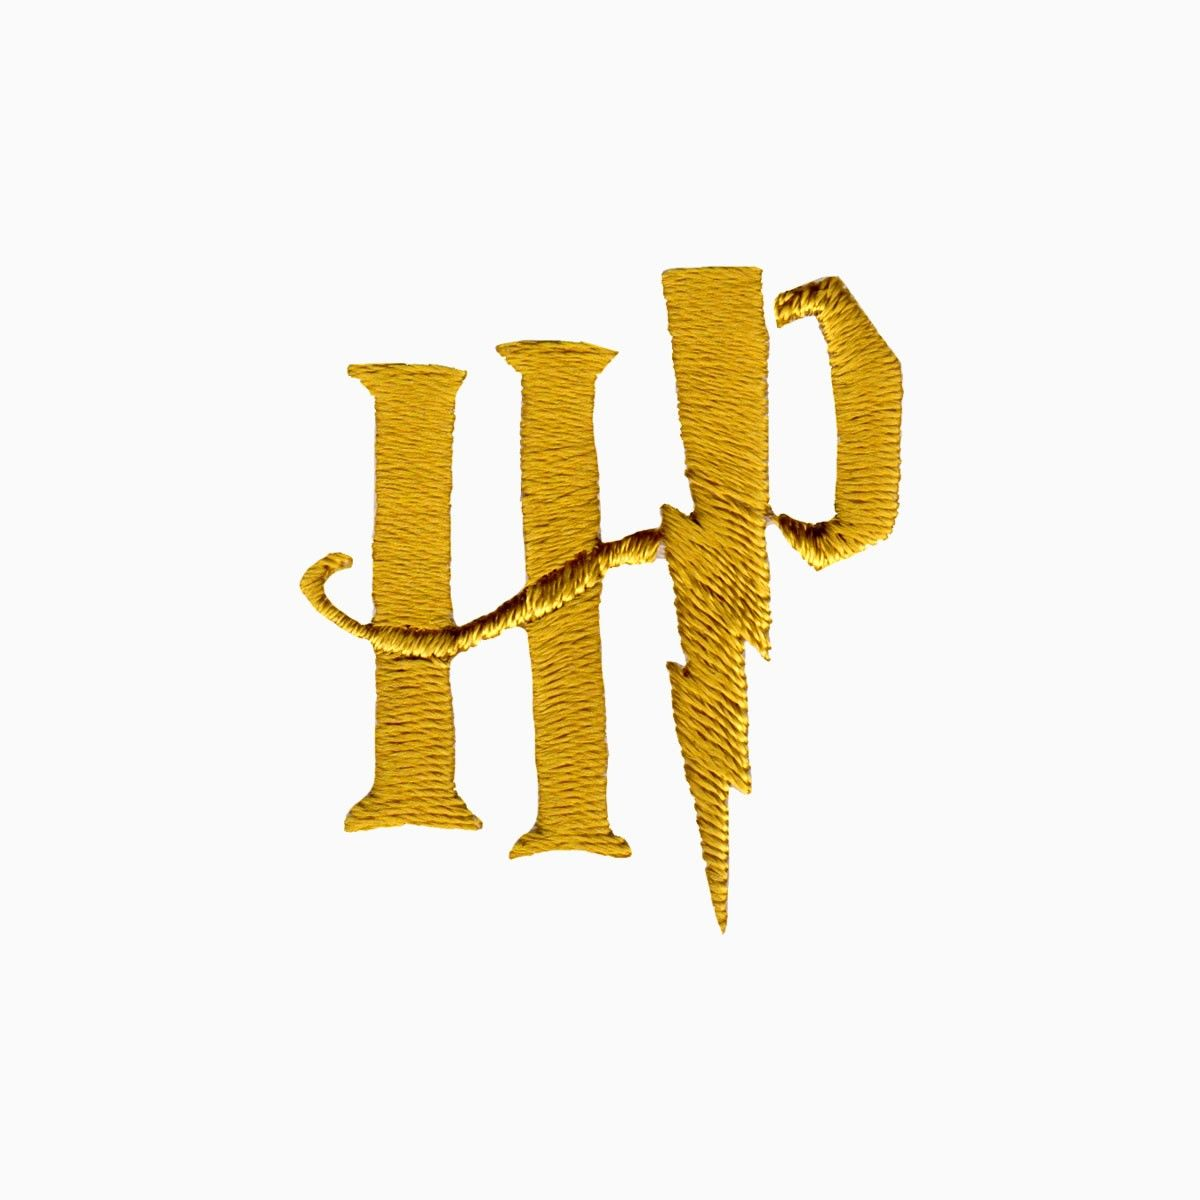 Harry potter logo clipart iphone 8 pluse picture library library Harry Potter Logo - LogoDix picture library library